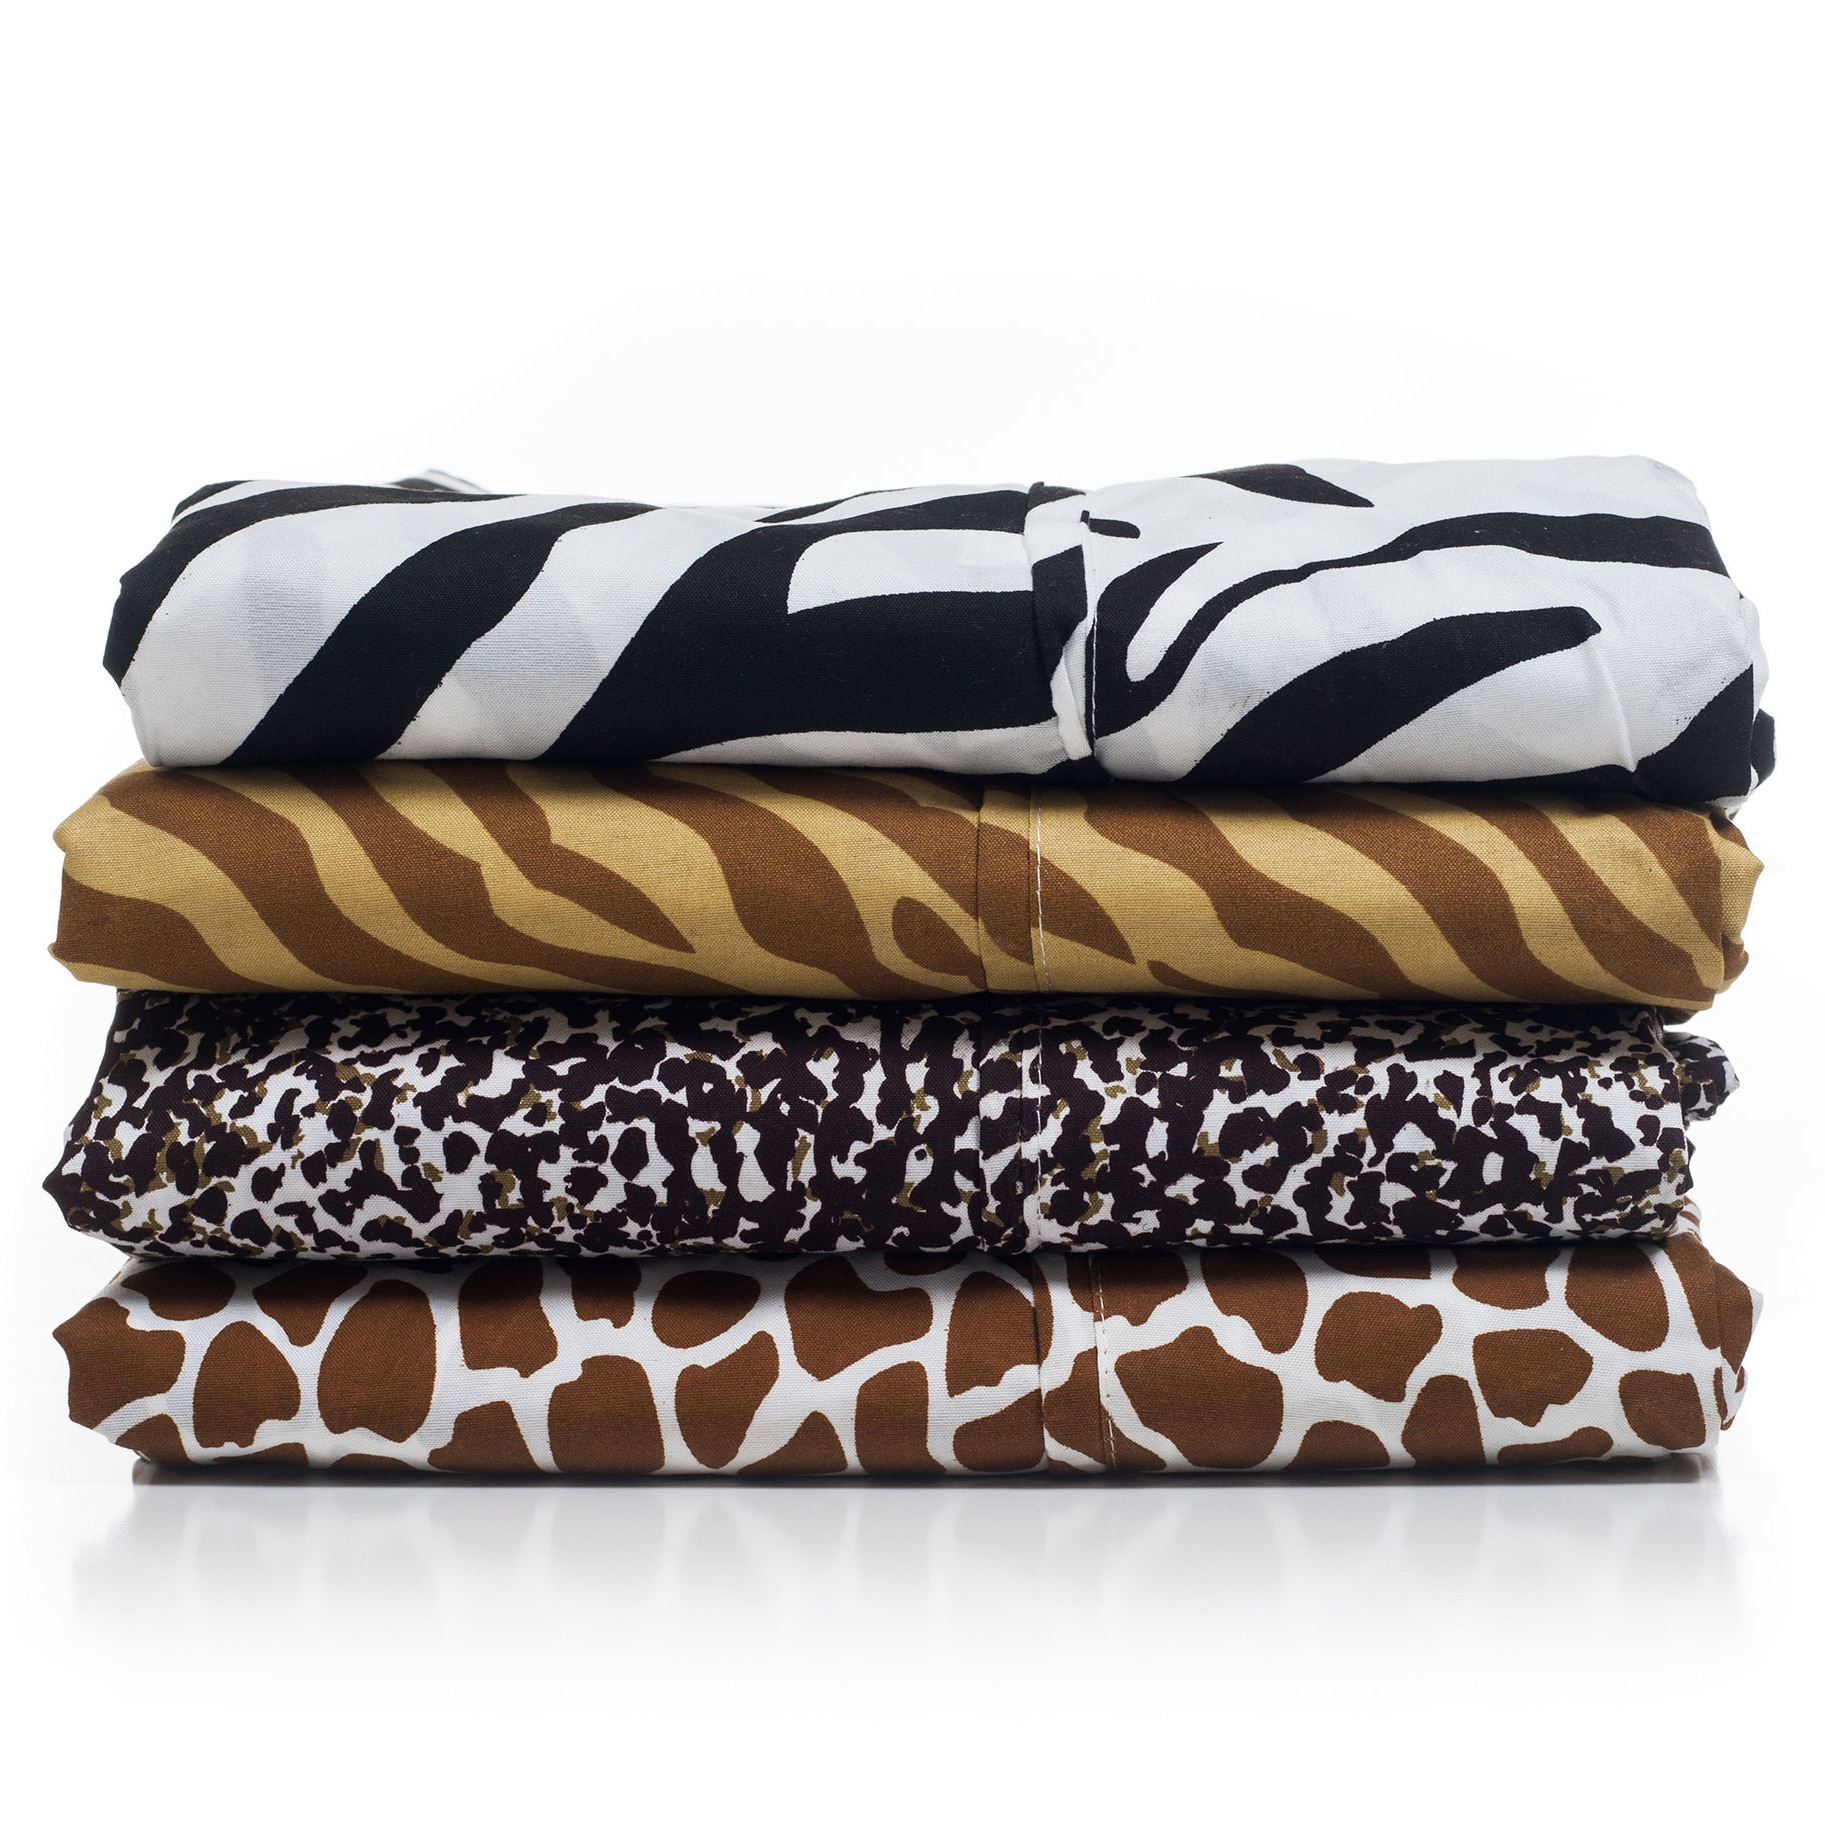 Windsor Microfiber Animal Print 4 Piece Sheet Set. As Expected